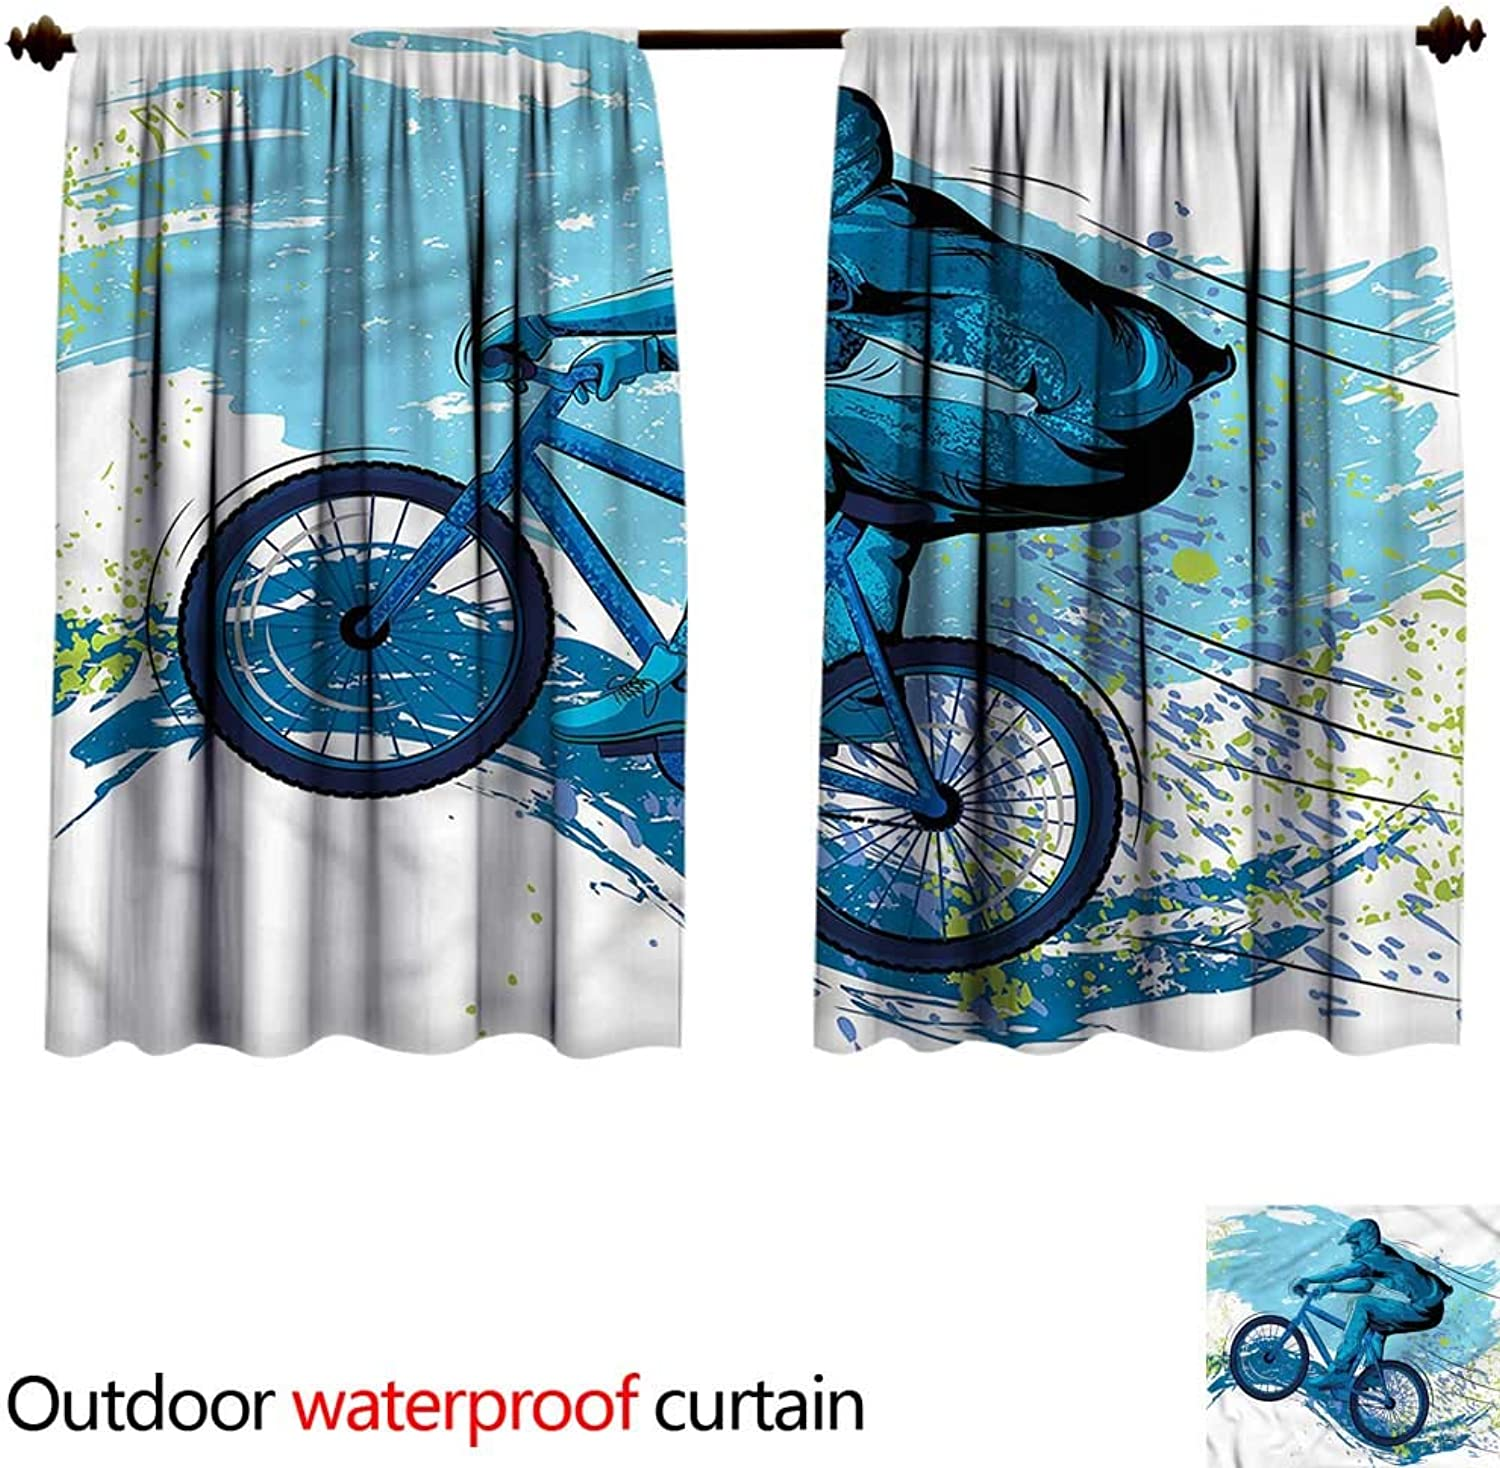 BlountDecor Curtain for outdoorAntiWater W72 x L63(183cm x 166cm) Sports,Bicyclist color Splashes